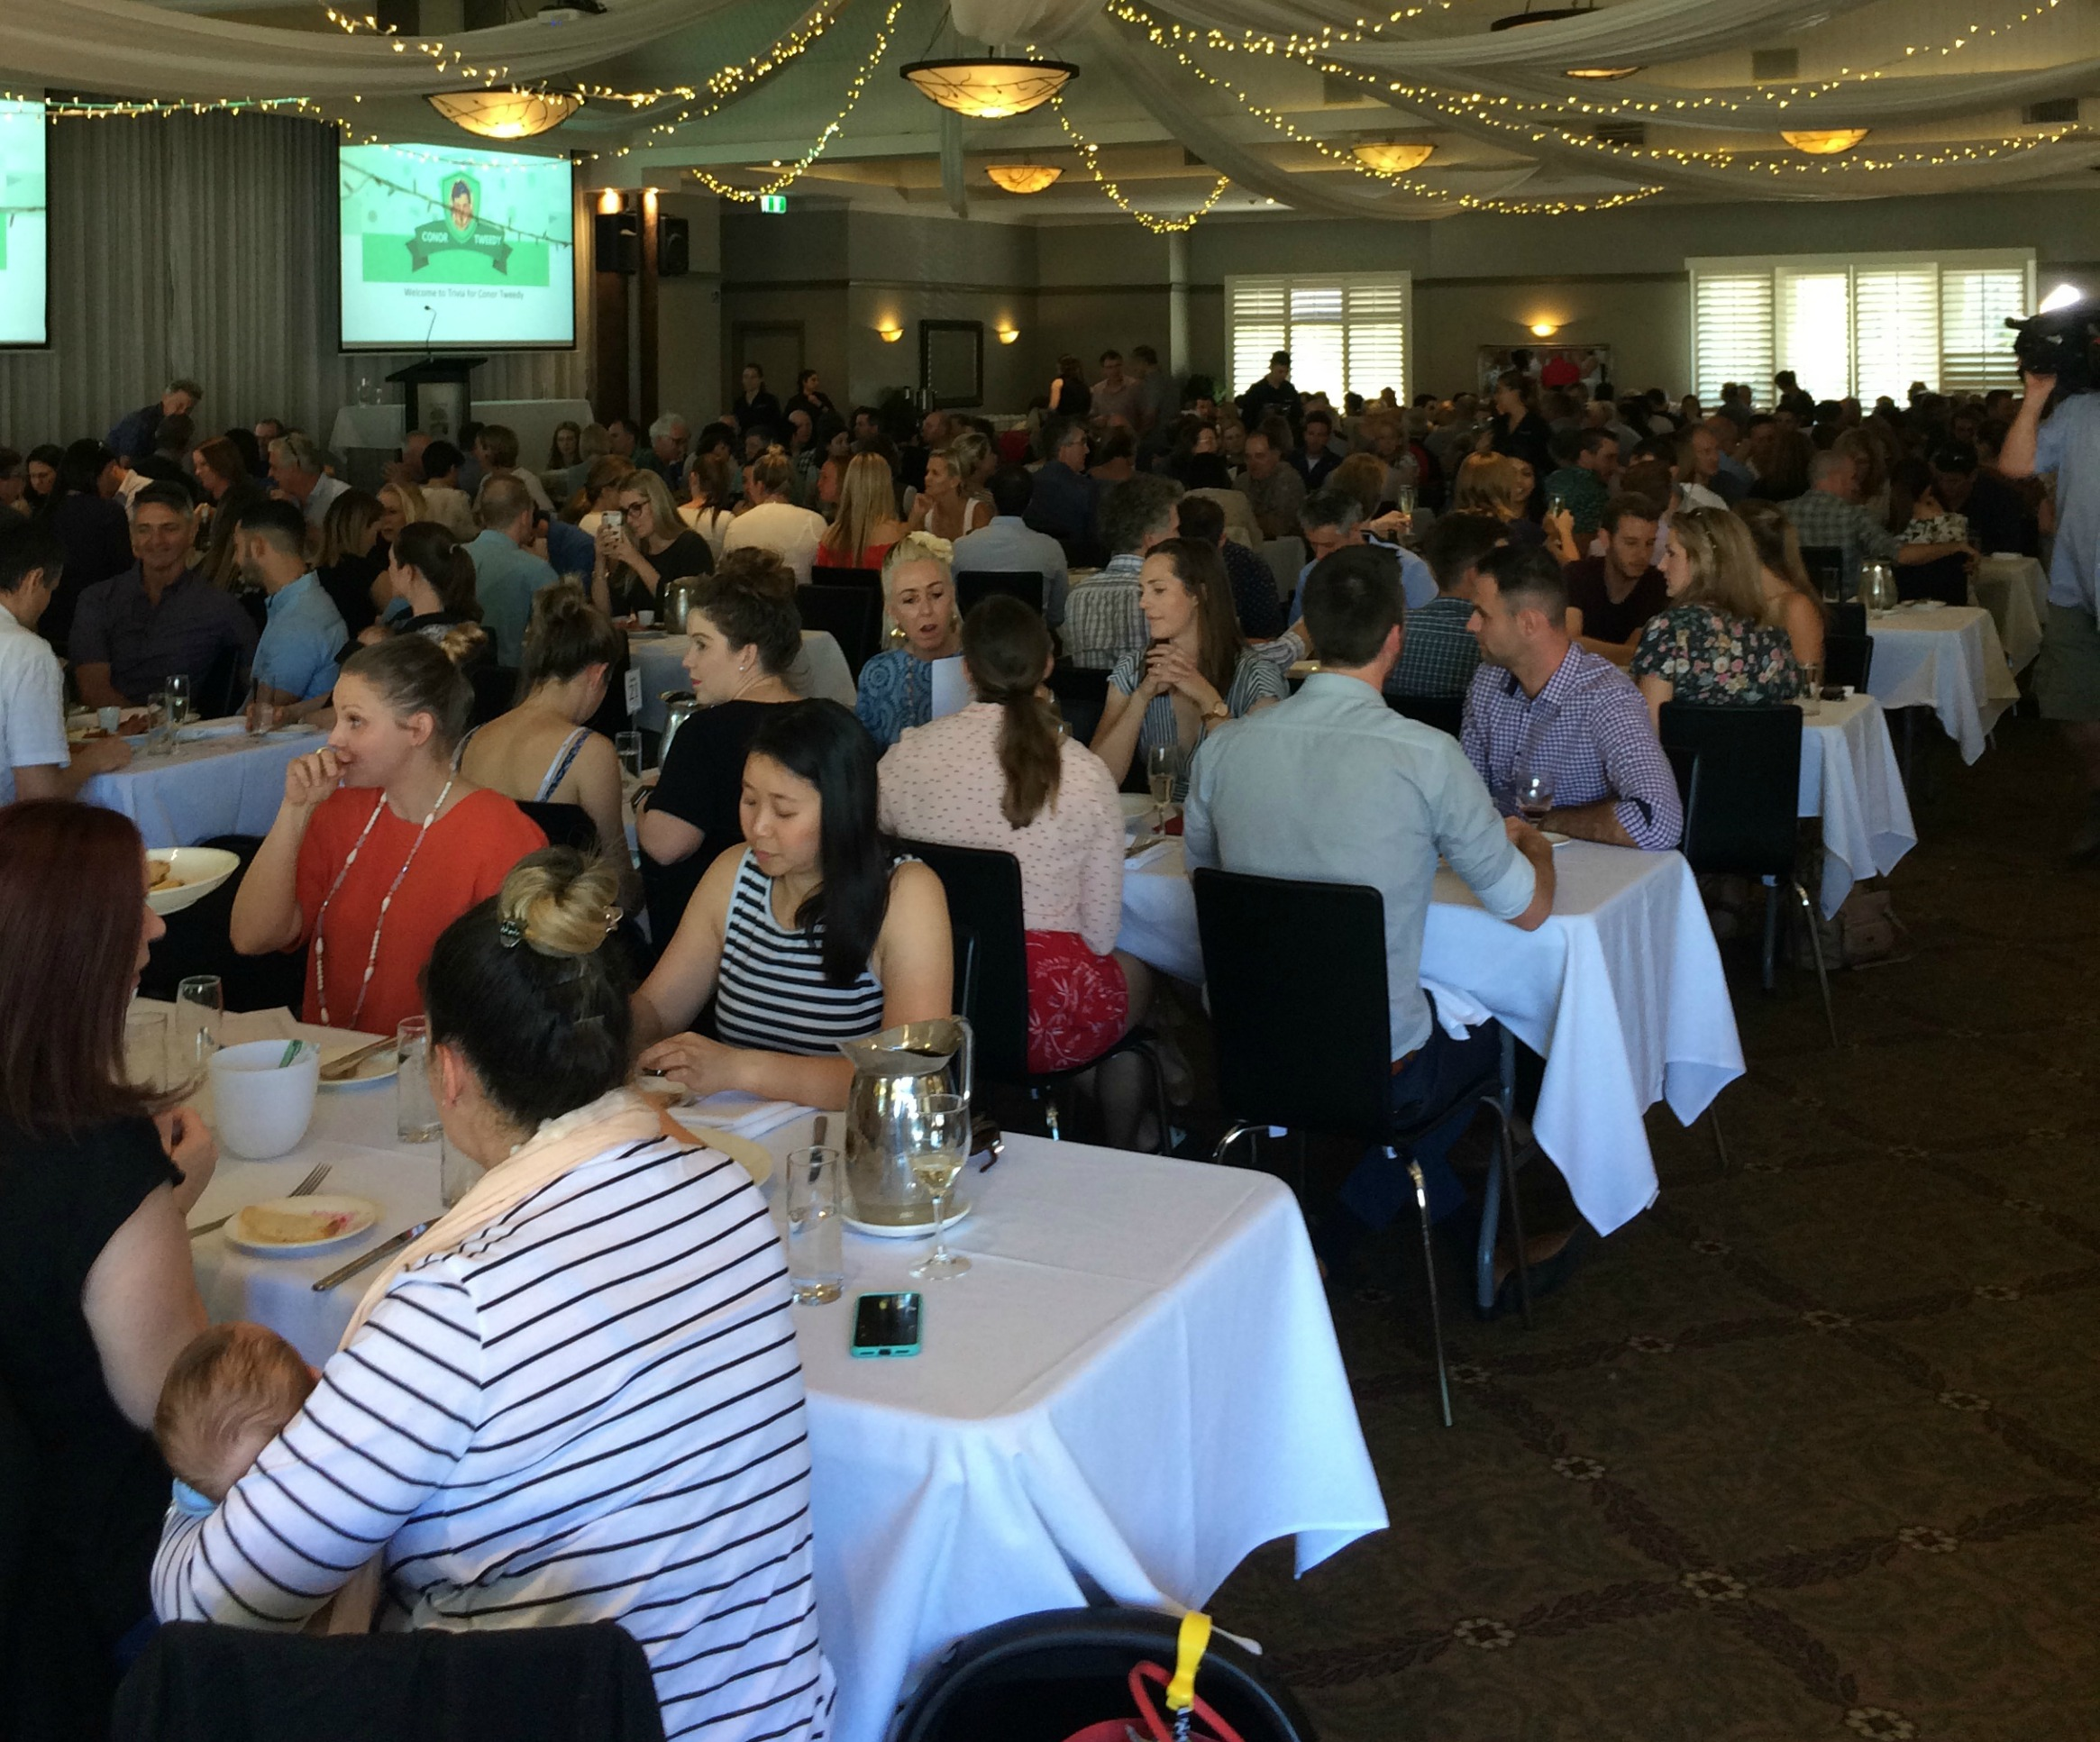 Sean's colleagues at the University of Queensland organised a Trivia afternoon with over 300 participants.